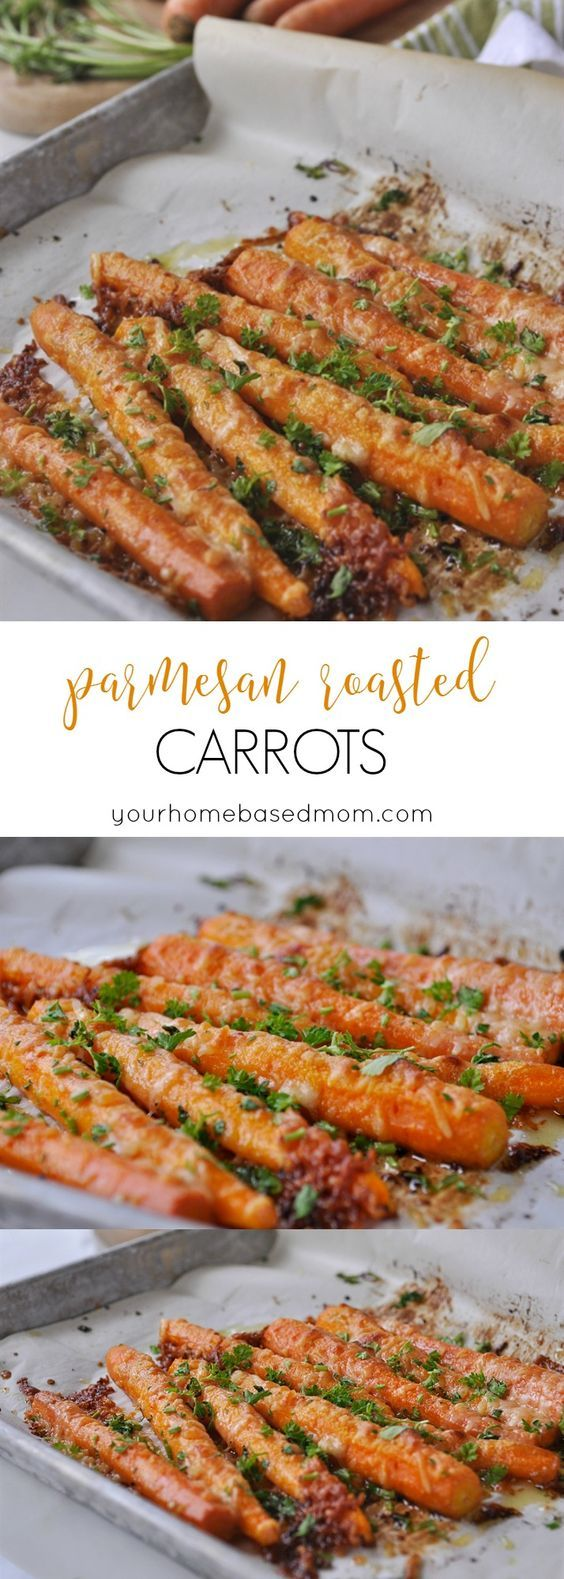 Parmesan Roasted Carrots - the perfect way to get your family to eat their veggies.: